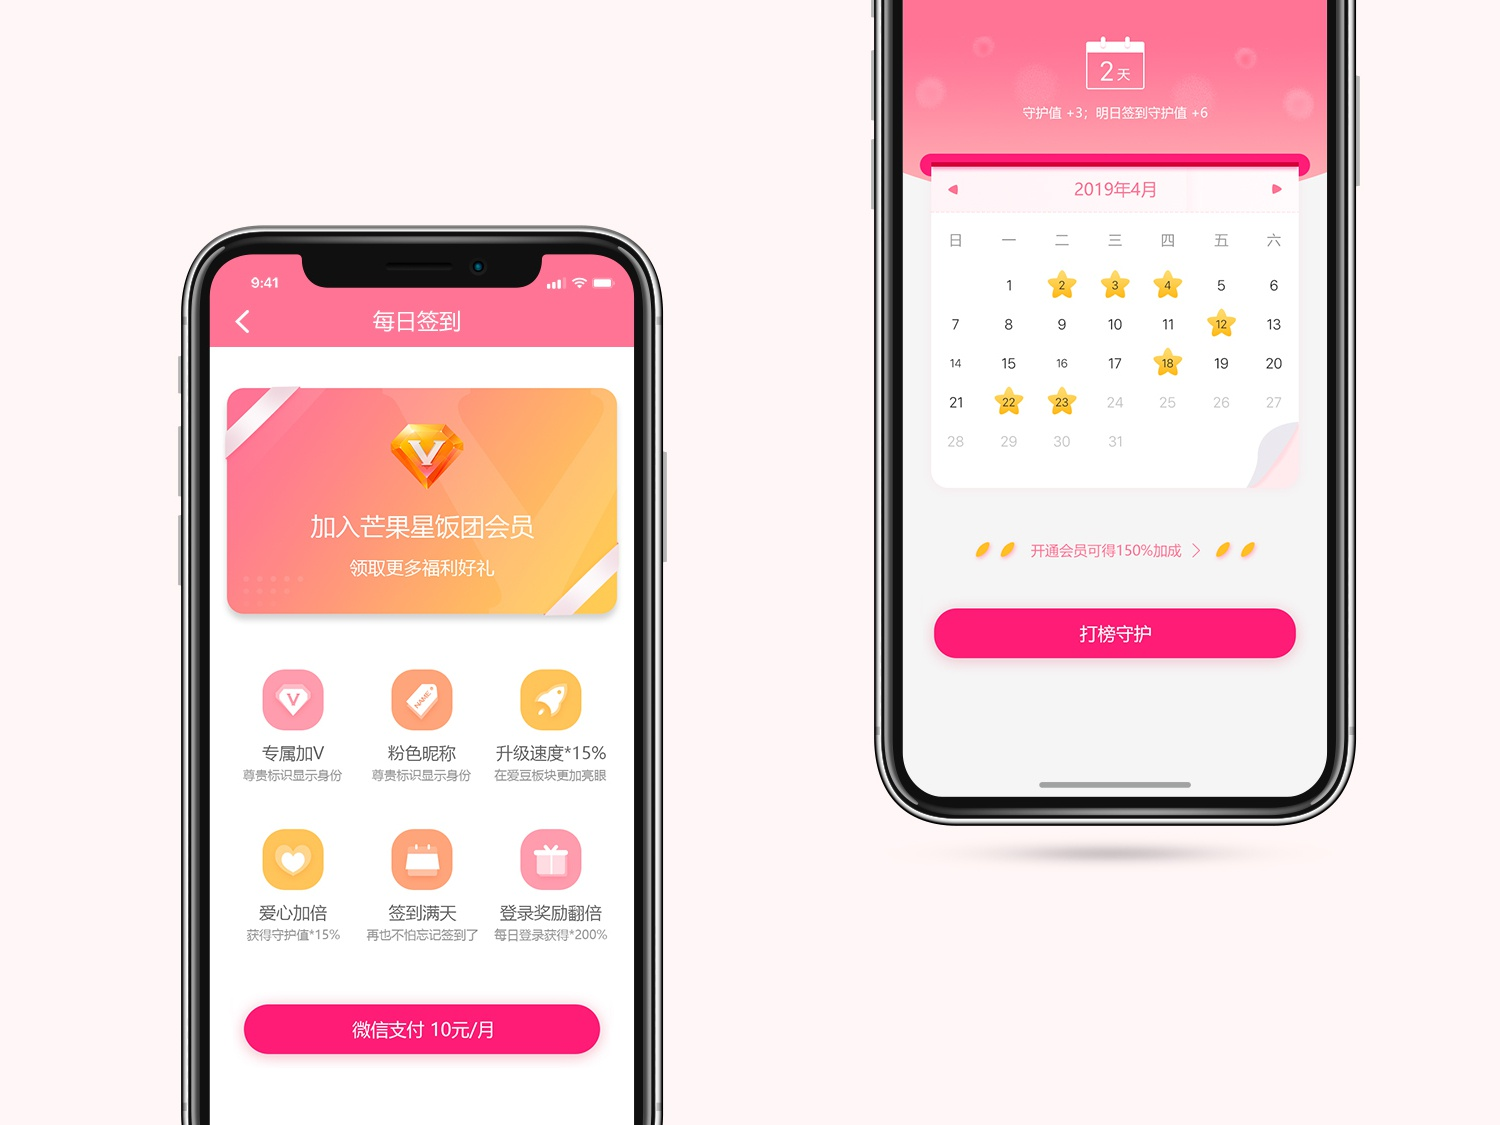 Vip、member、Sign in, -Star homepage by Susan on Dribbble